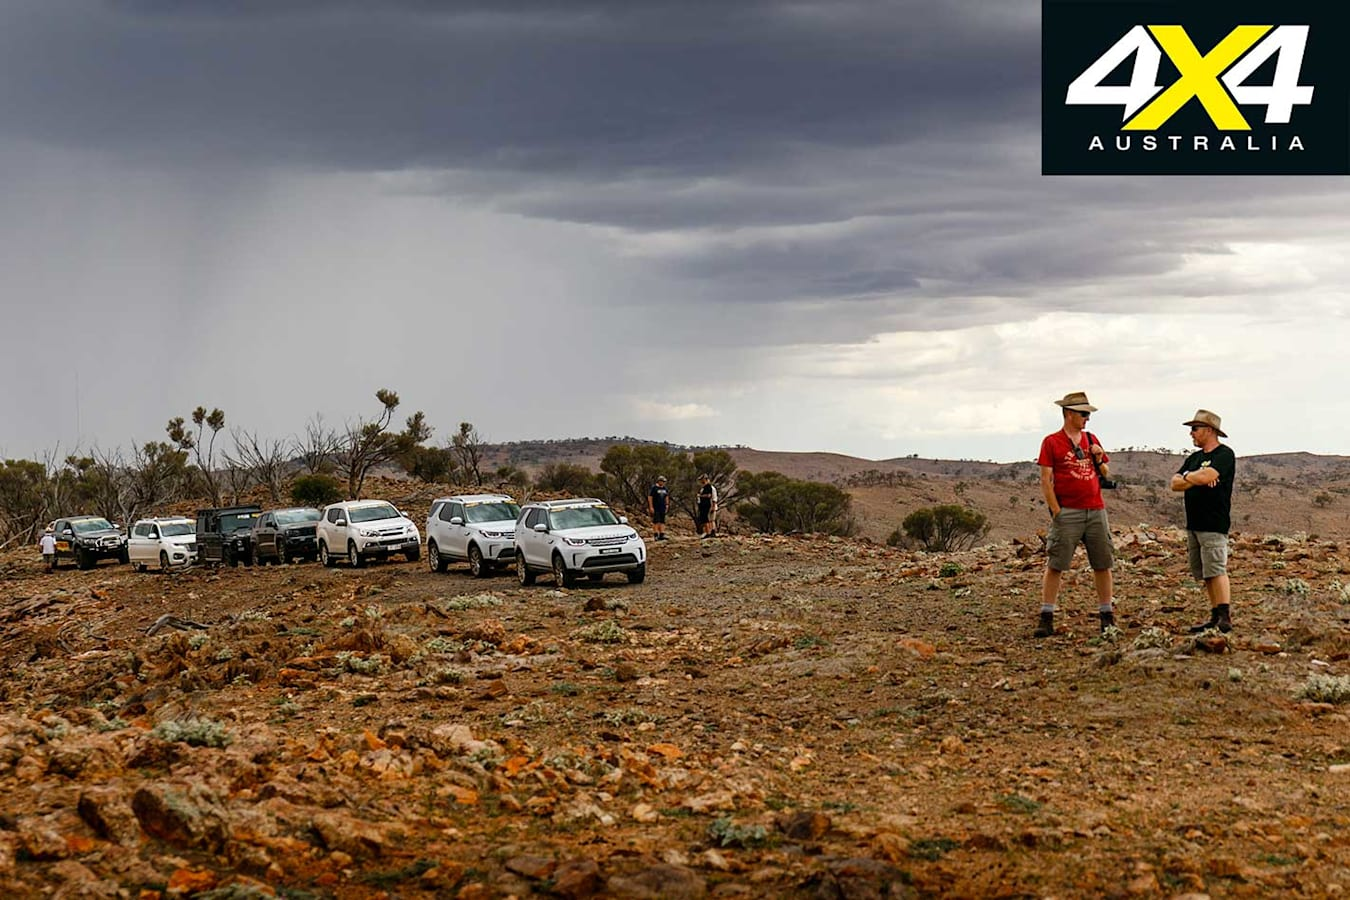 4 X 4 Australia February 2018 Issue Is On Sale 4 X 4 Of The Year Jpg